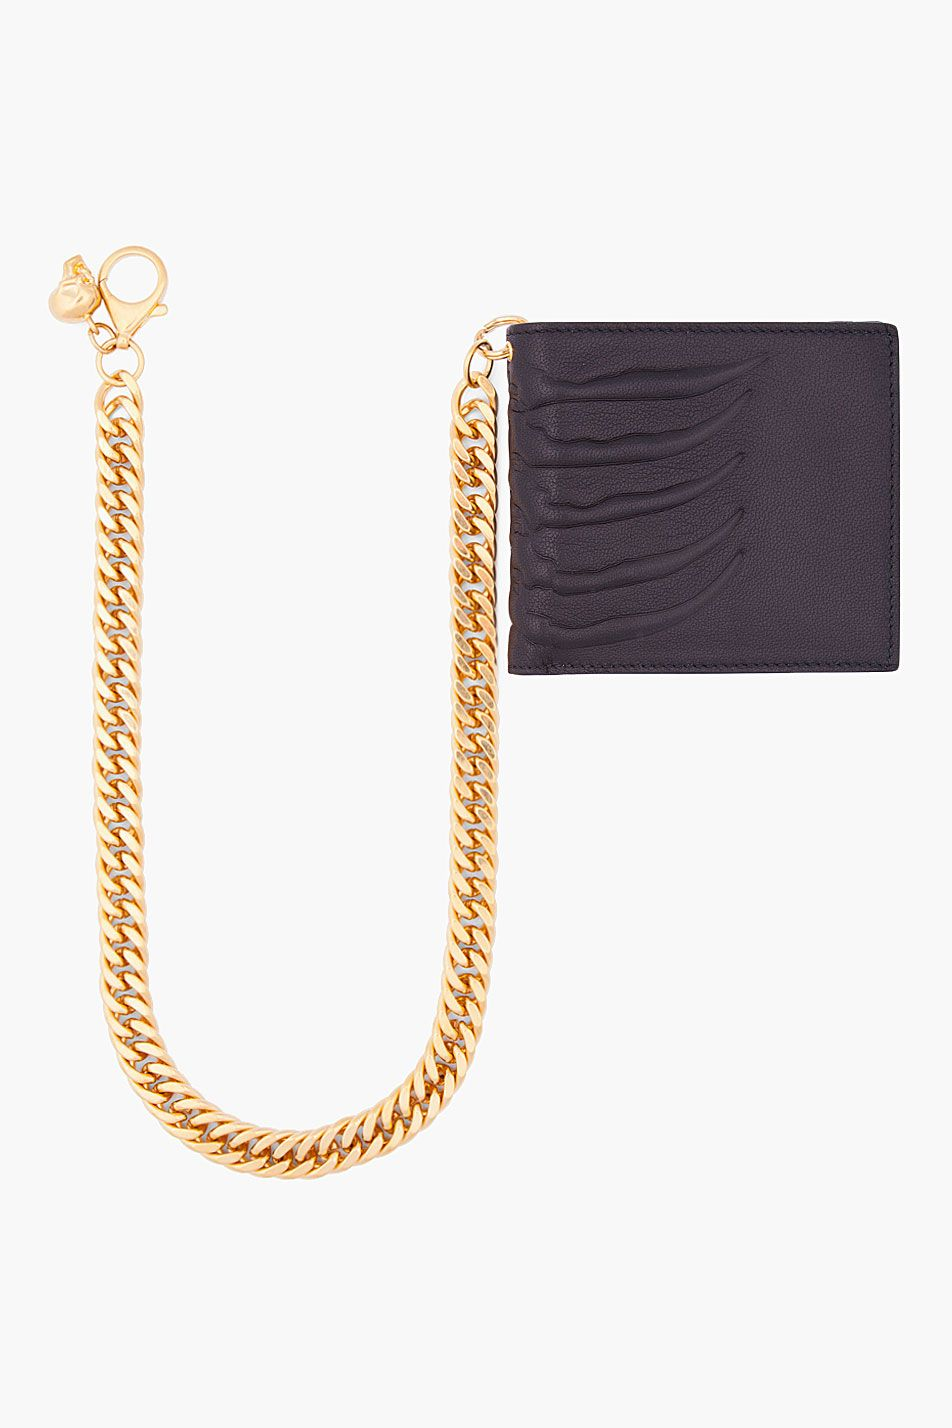 ALEXANDER MCQUEEN //  BLACK LEATHER RIBS CHAIN WALLET